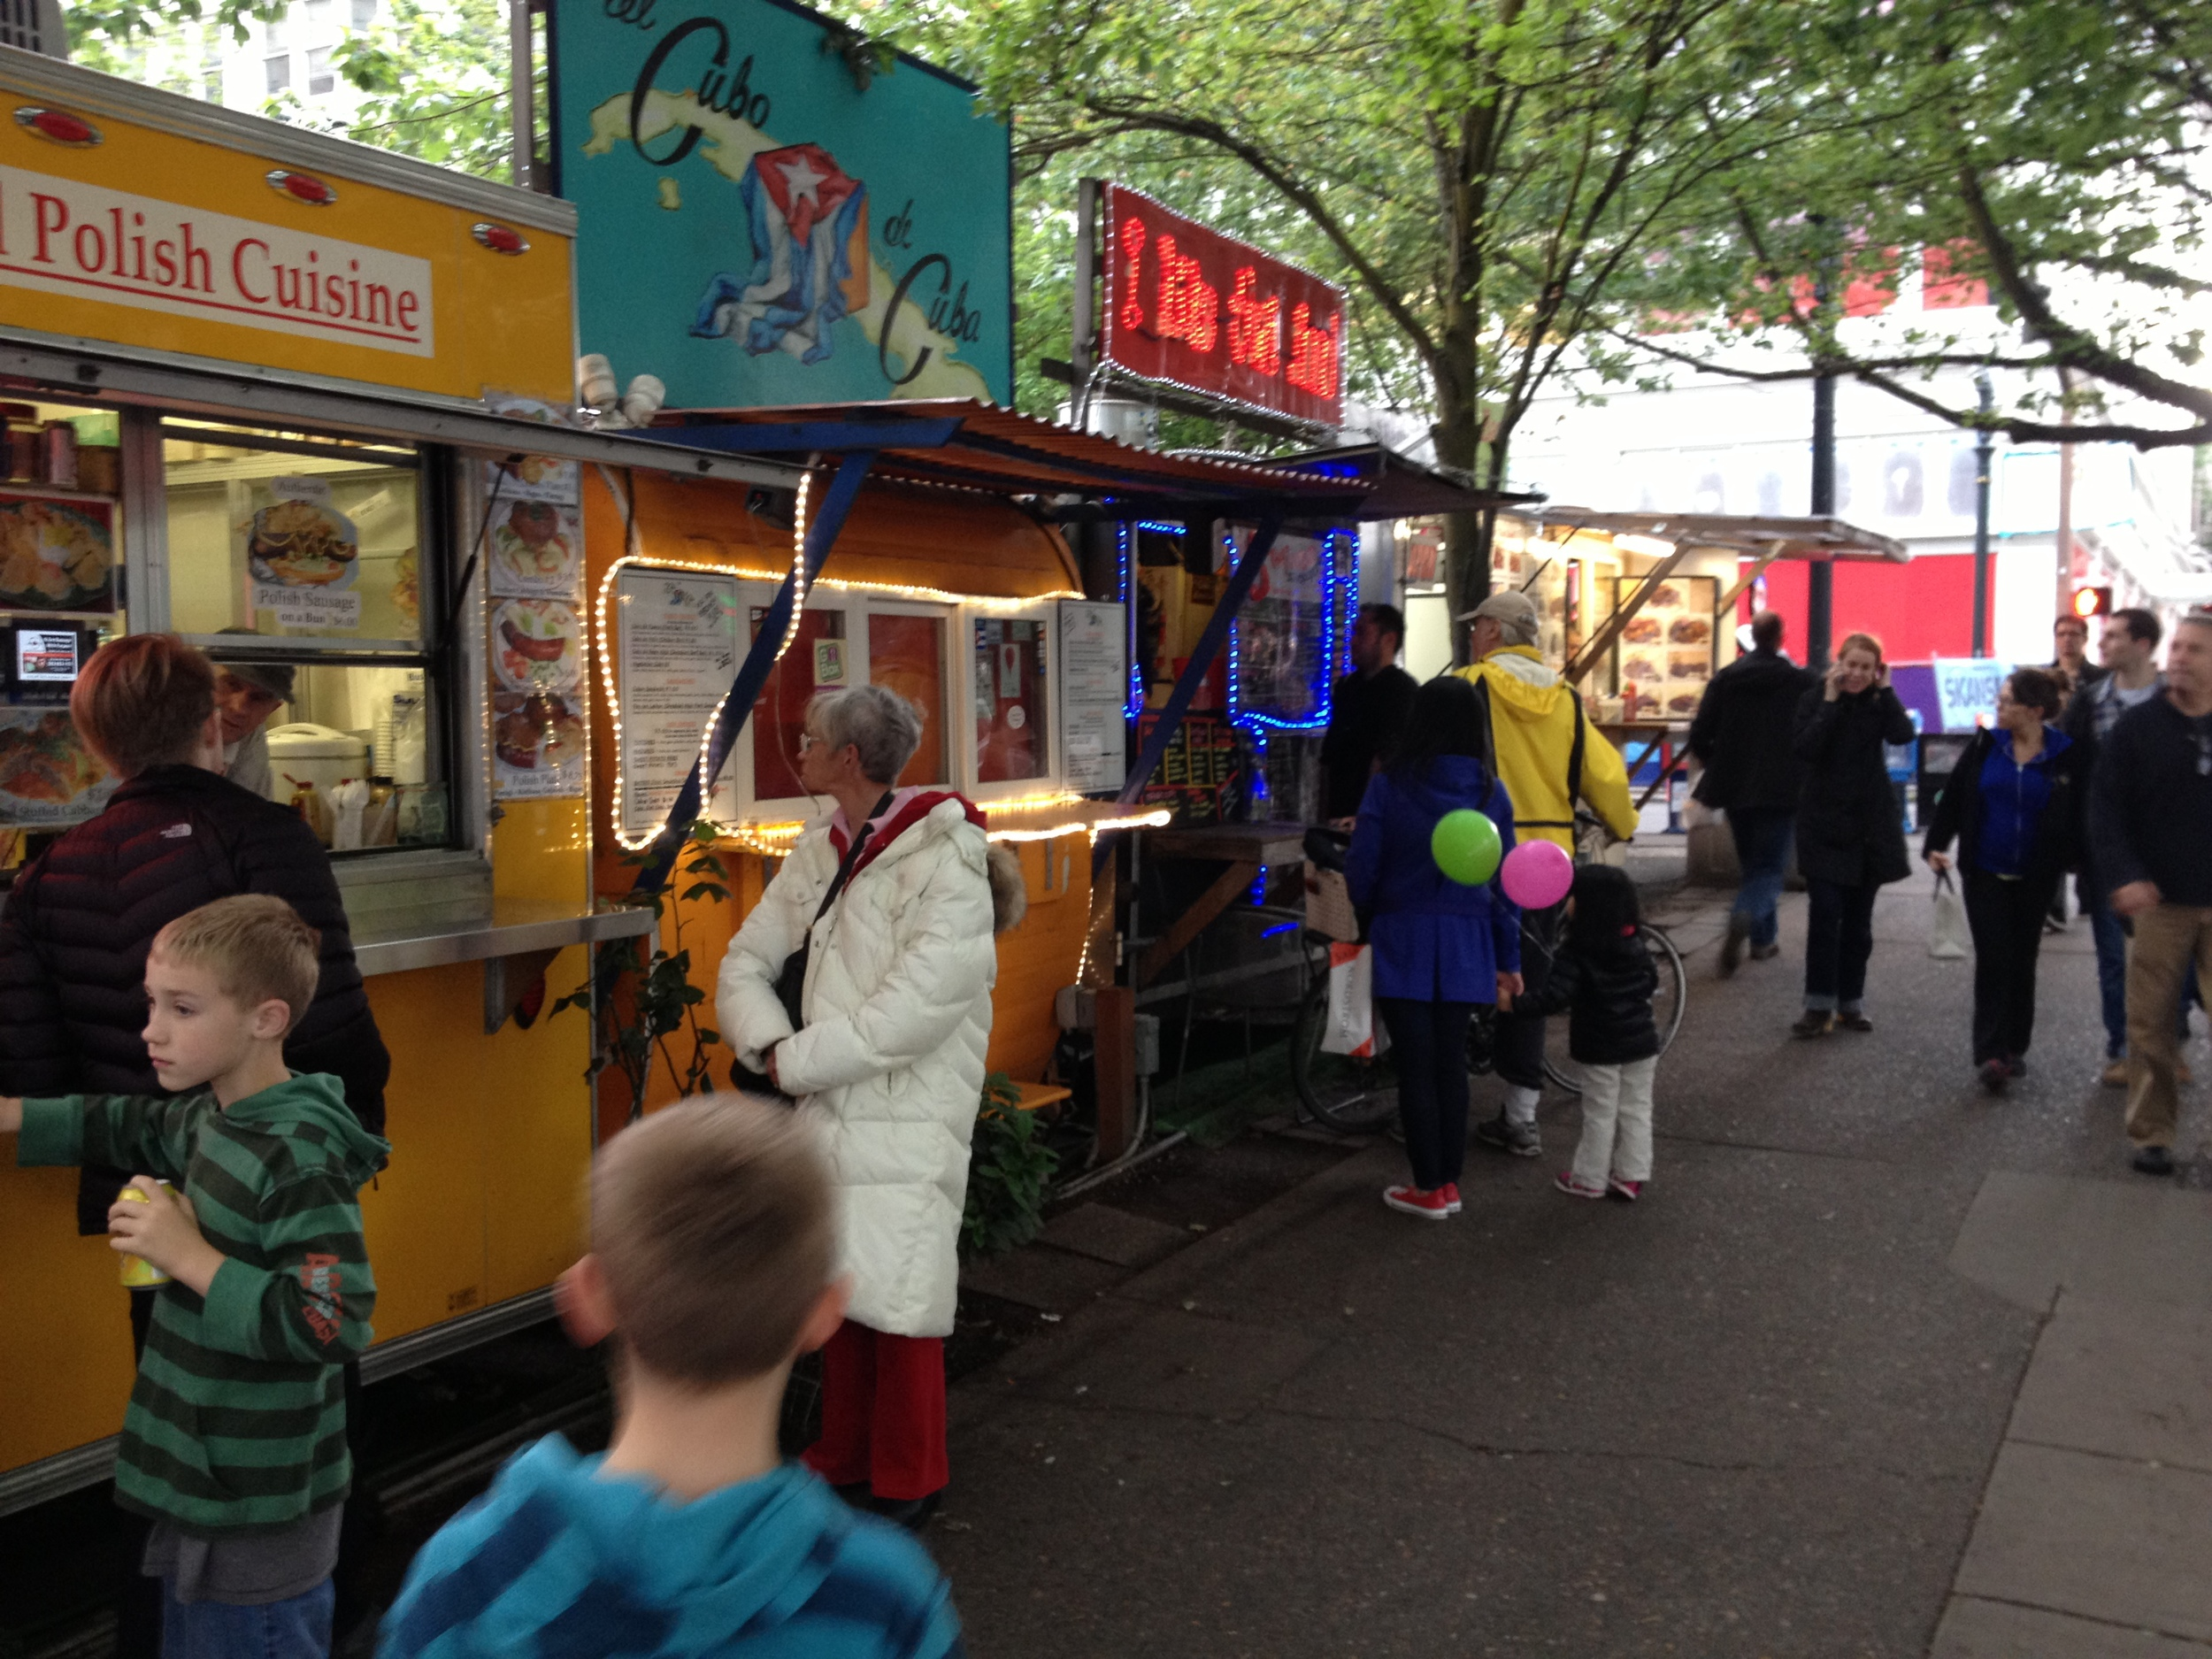 While not all of the streets of Portland are lined with food carts there are lots of them around.  Technically they are not food trucks as they don't move from location to location, they are set up permanently in parking lots throughout the city centre.